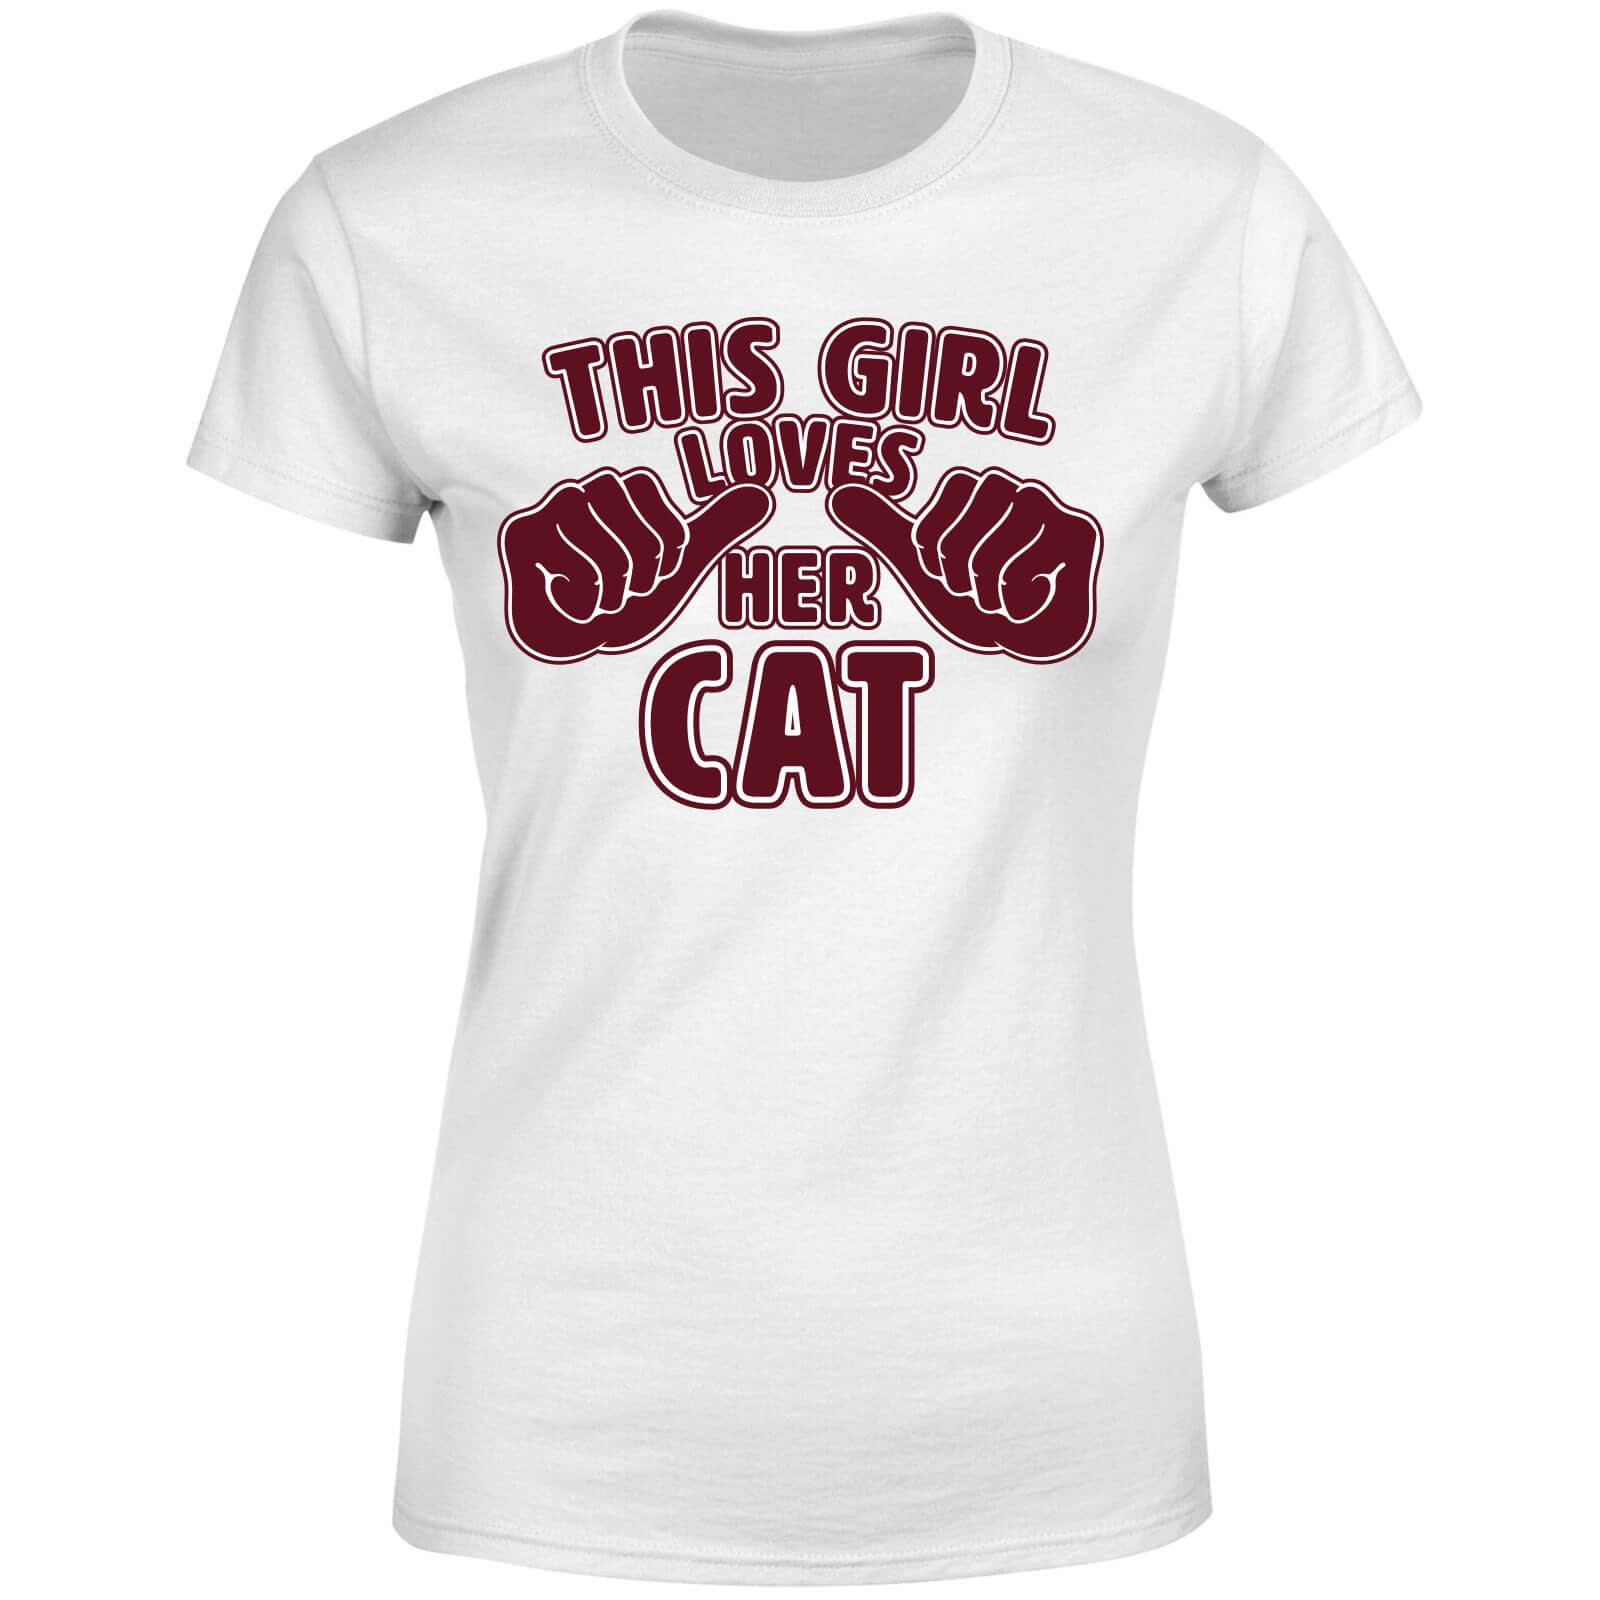 This Girl Loves Her Cat Women